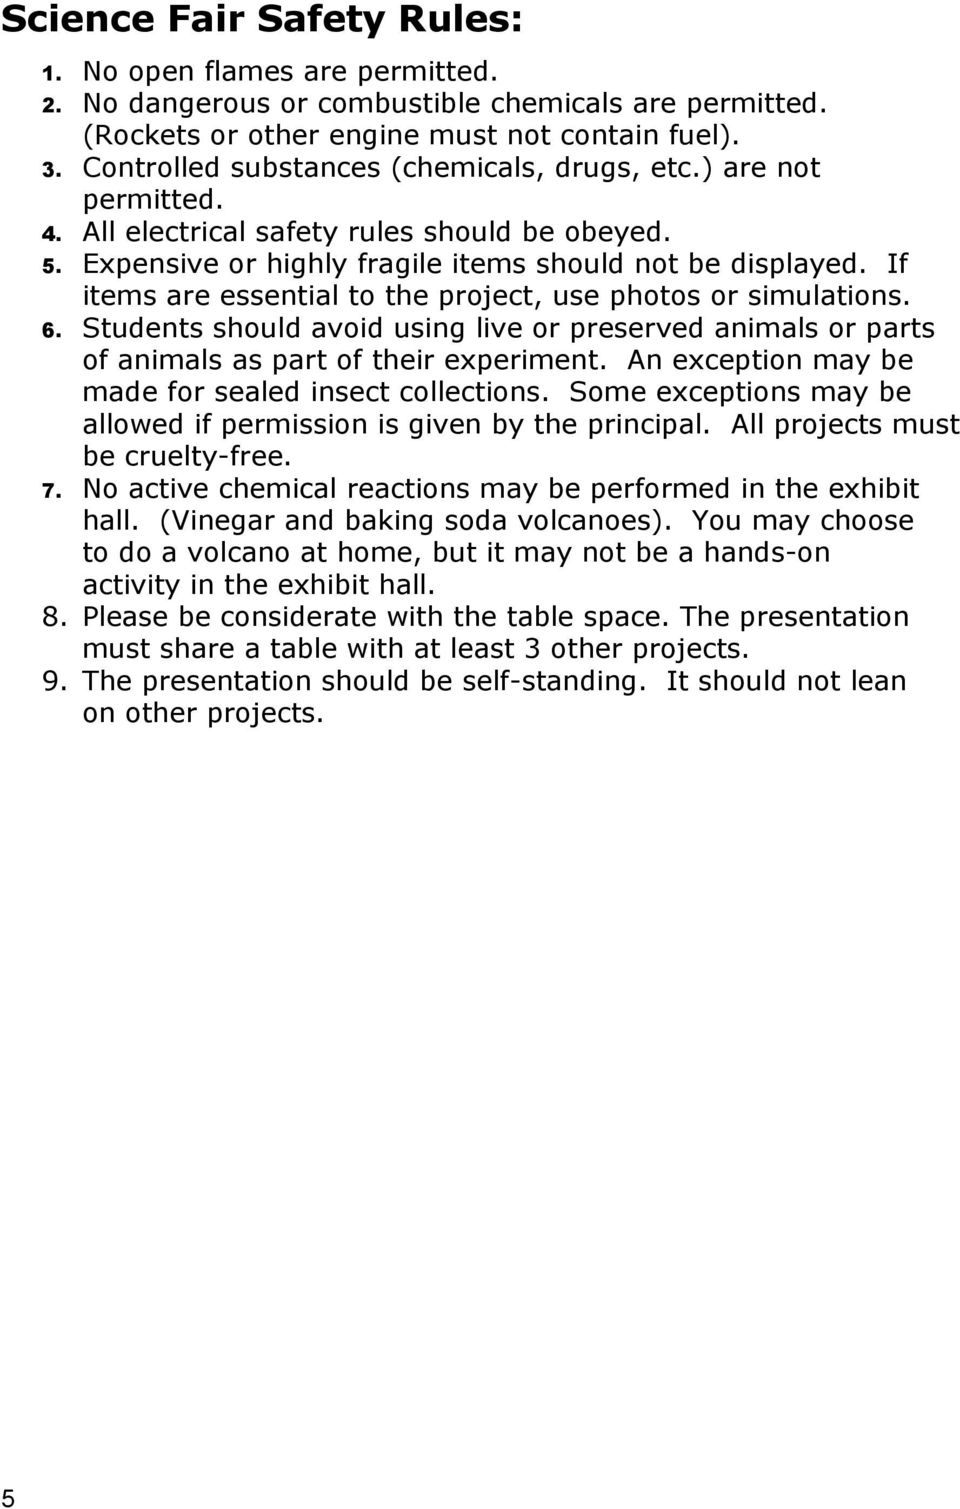 If items are essential to the project, use photos or simulations. 6. Students should avoid using live or preserved animals or parts of animals as part of their experiment.